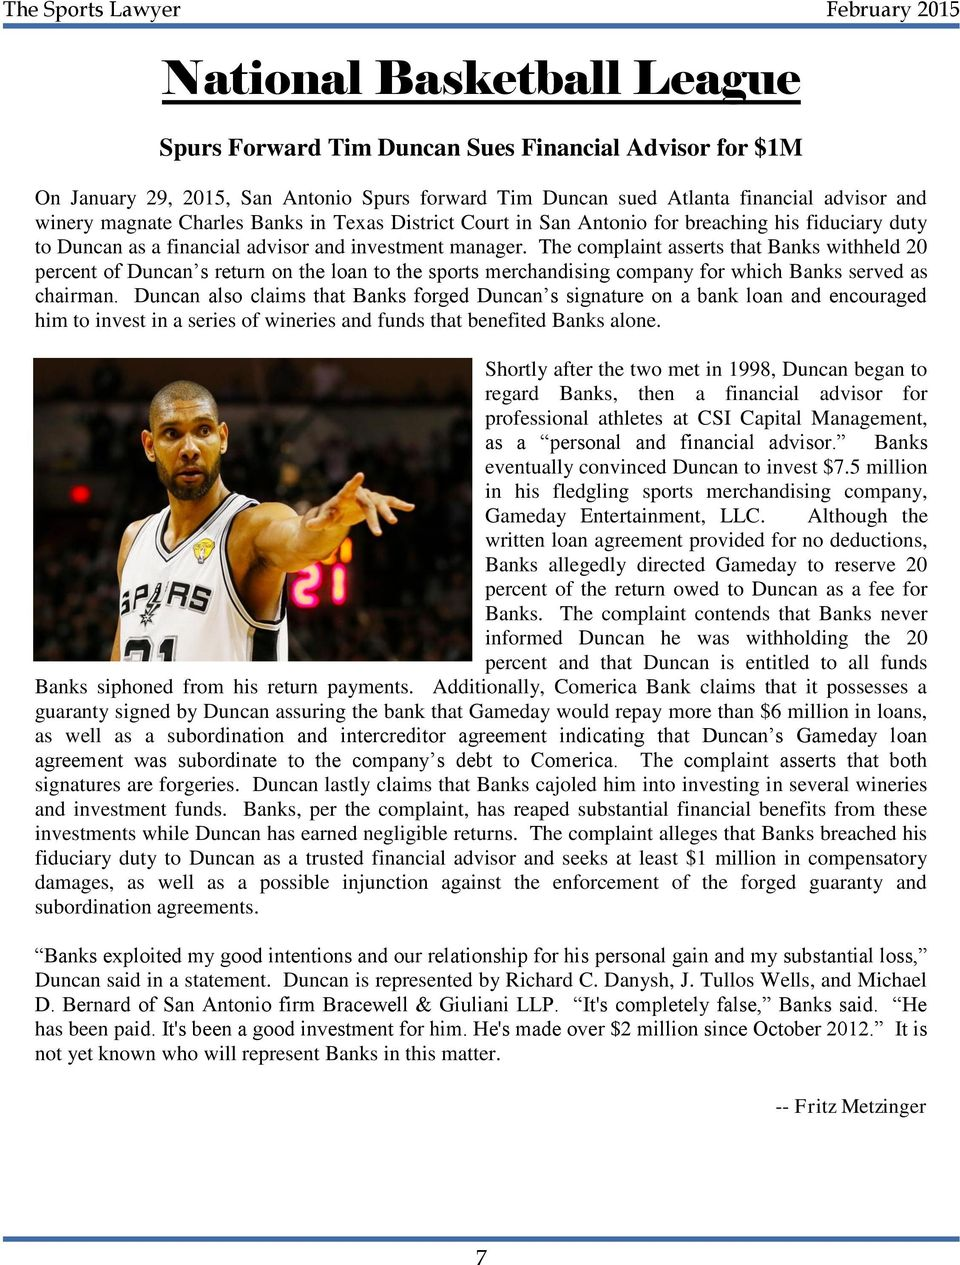 The complaint asserts that Banks withheld 20 percent of Duncan s return on the loan to the sports merchandising company for which Banks served as chairman.